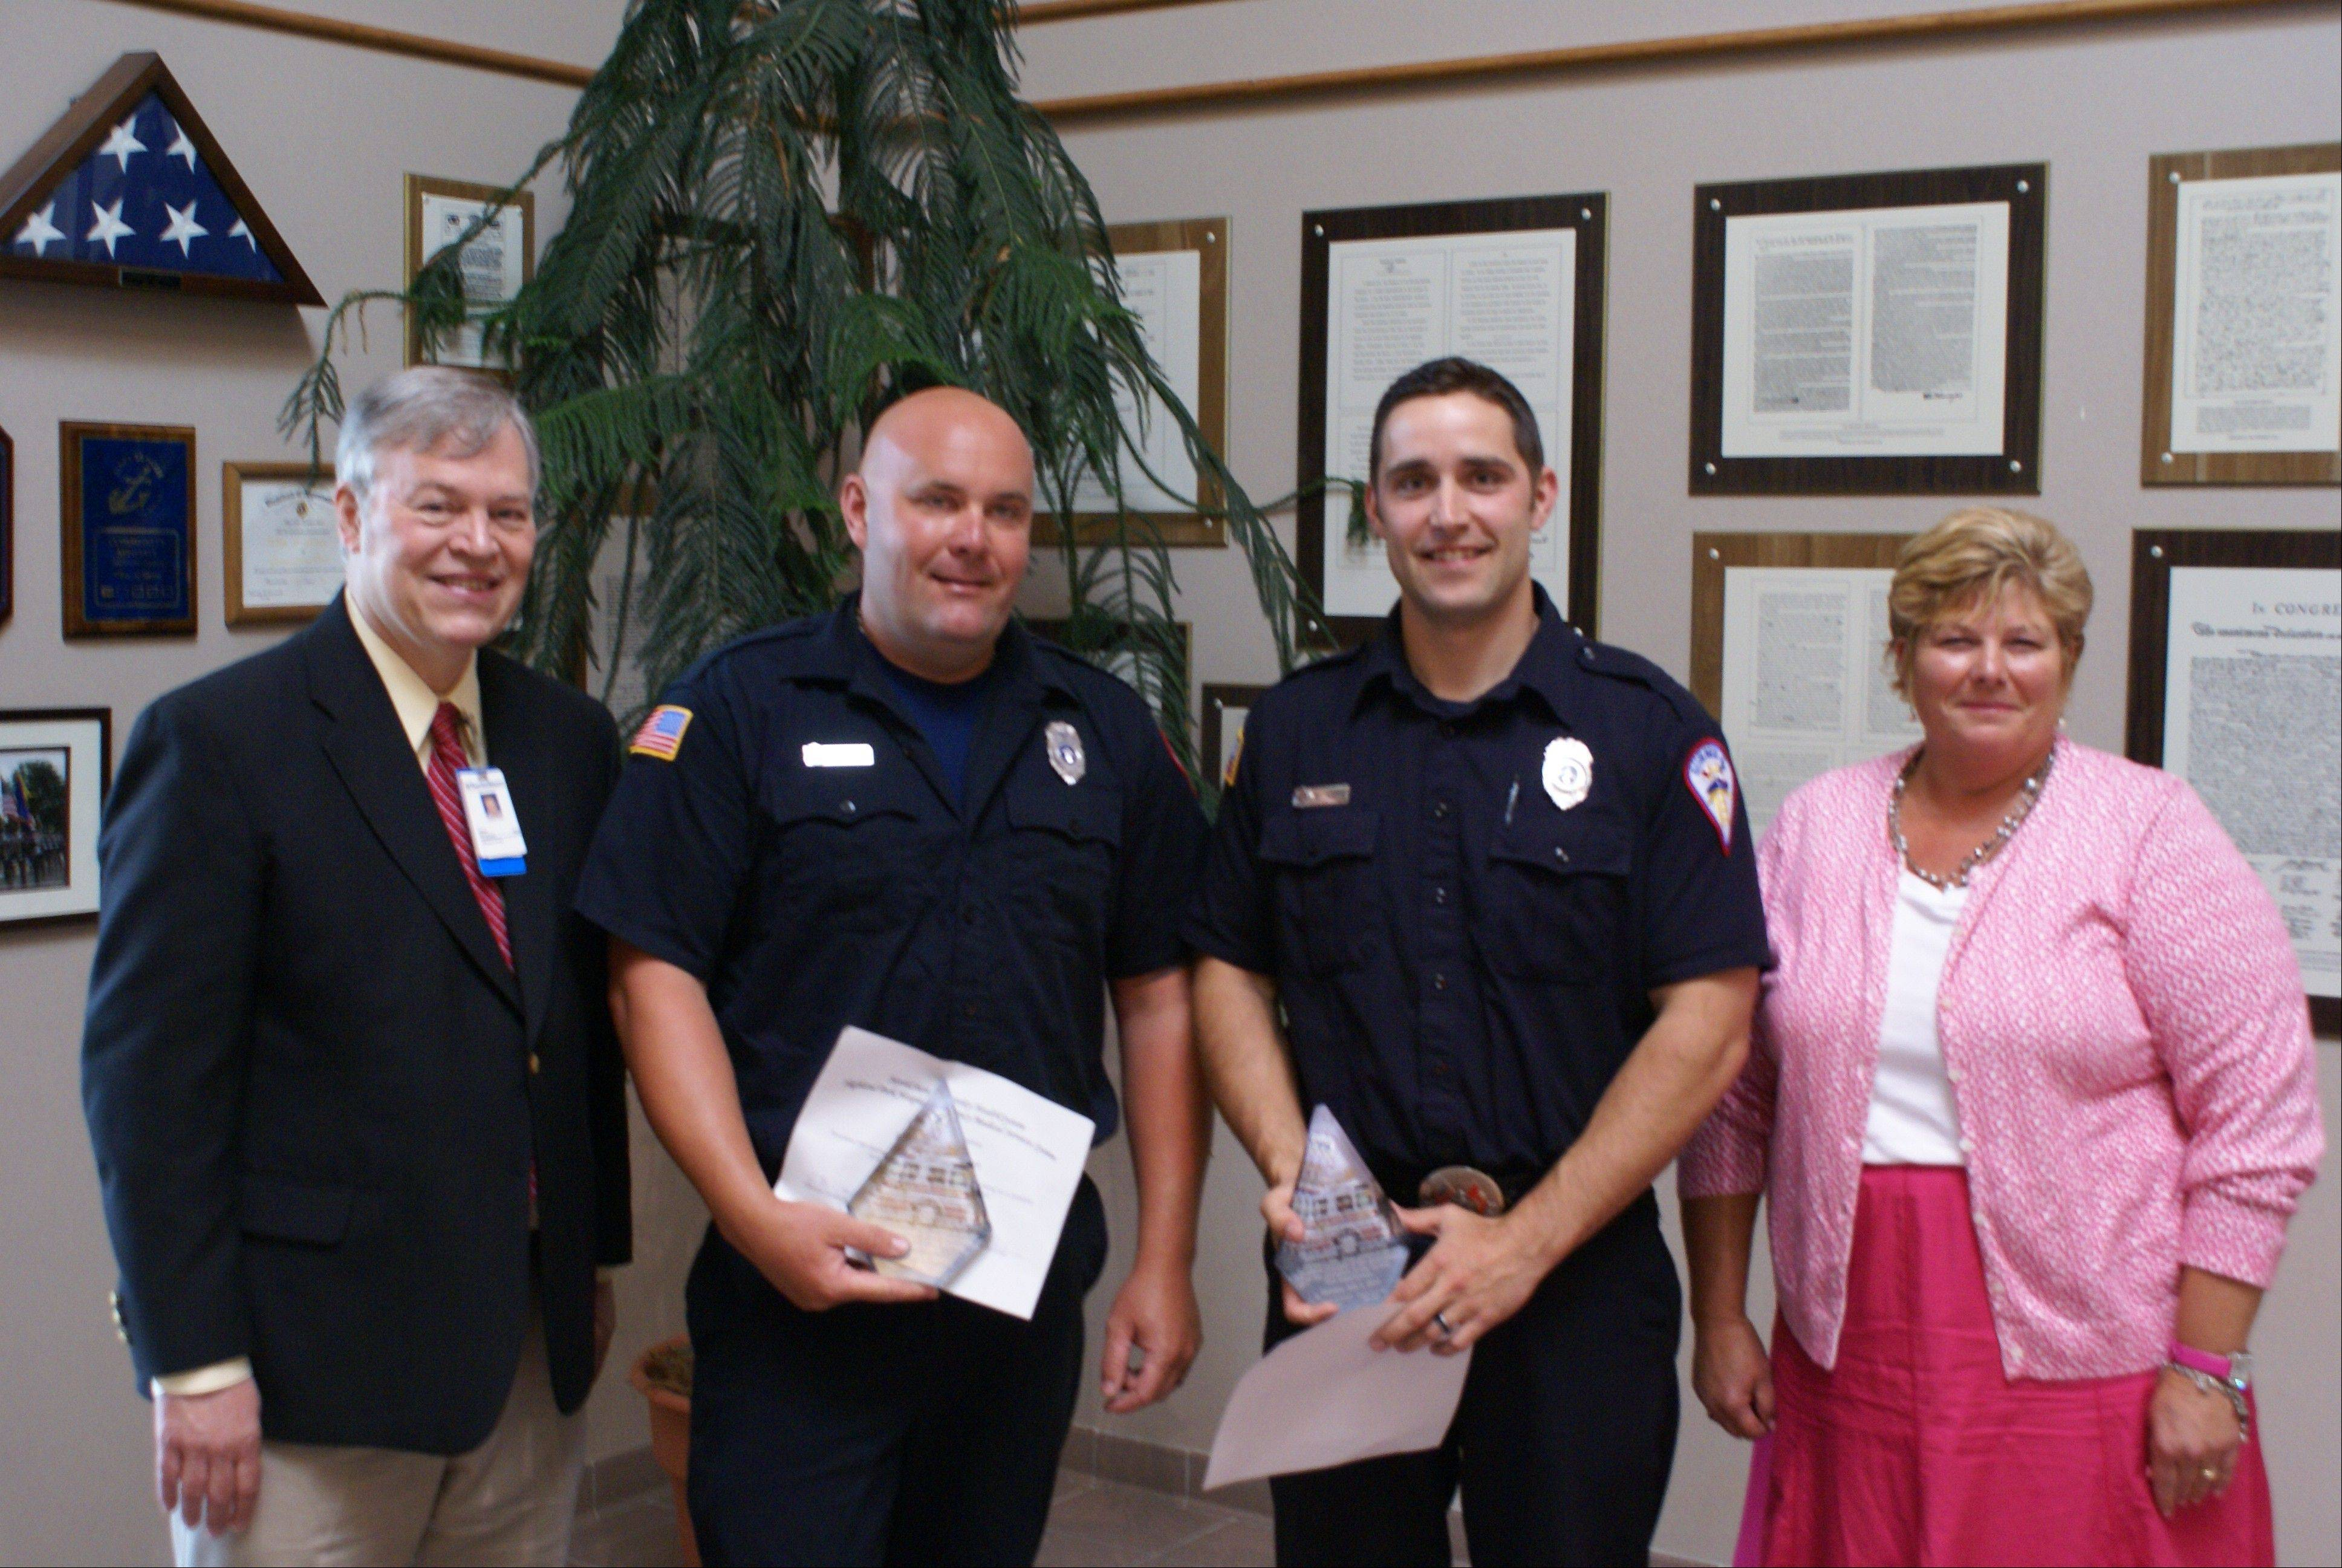 From left to right, Dr. Jack Whitney, NorthShore University HealthSystem emergency medical services director, Gurnee firefighter/paramedics Robert Davidson and Scott Rans, and NorthShore registered nurse and EMS coordinator Cheri Smirles at Monday's Gurnee village board meeting, when Davidson and Rans were honored for performing lifesaving actions while off duty in May.